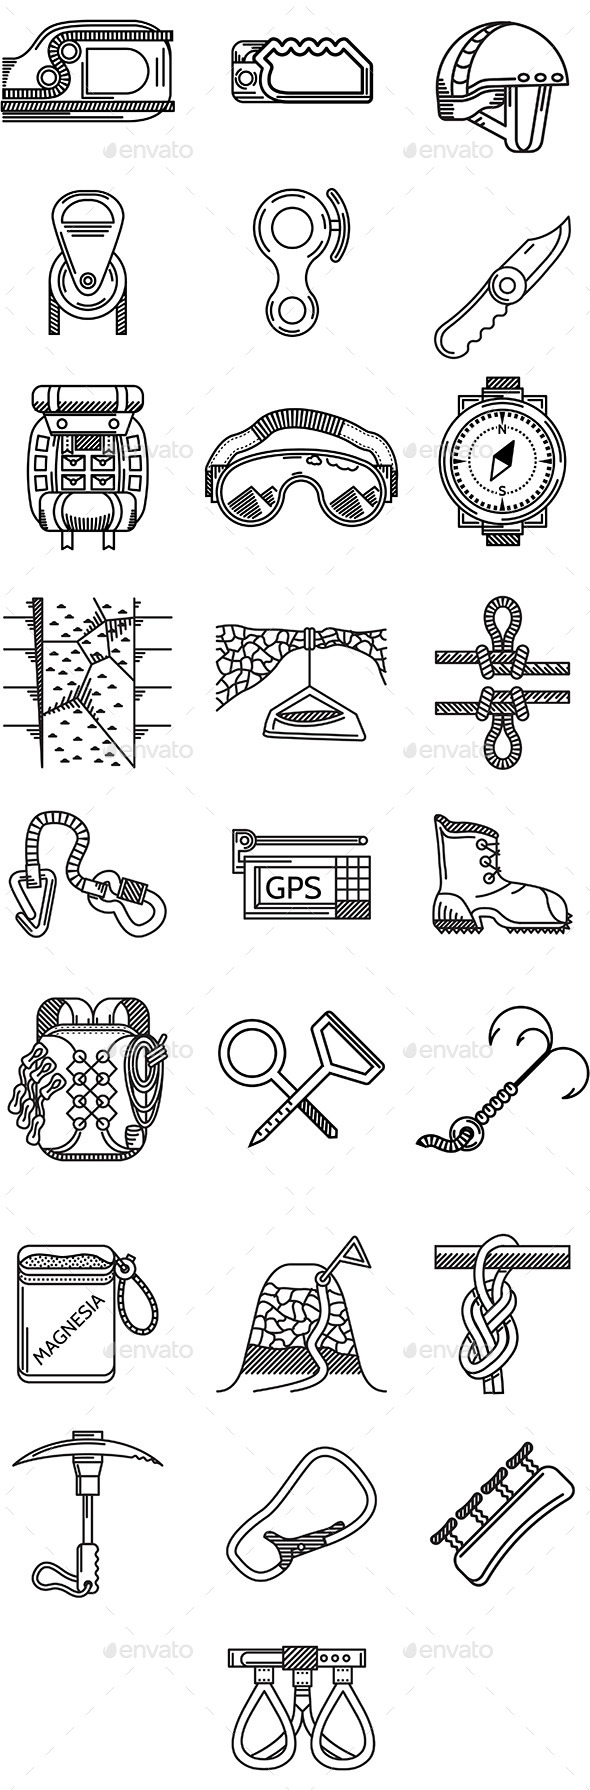 GraphicRiver Rock Climbing Icons 10522789